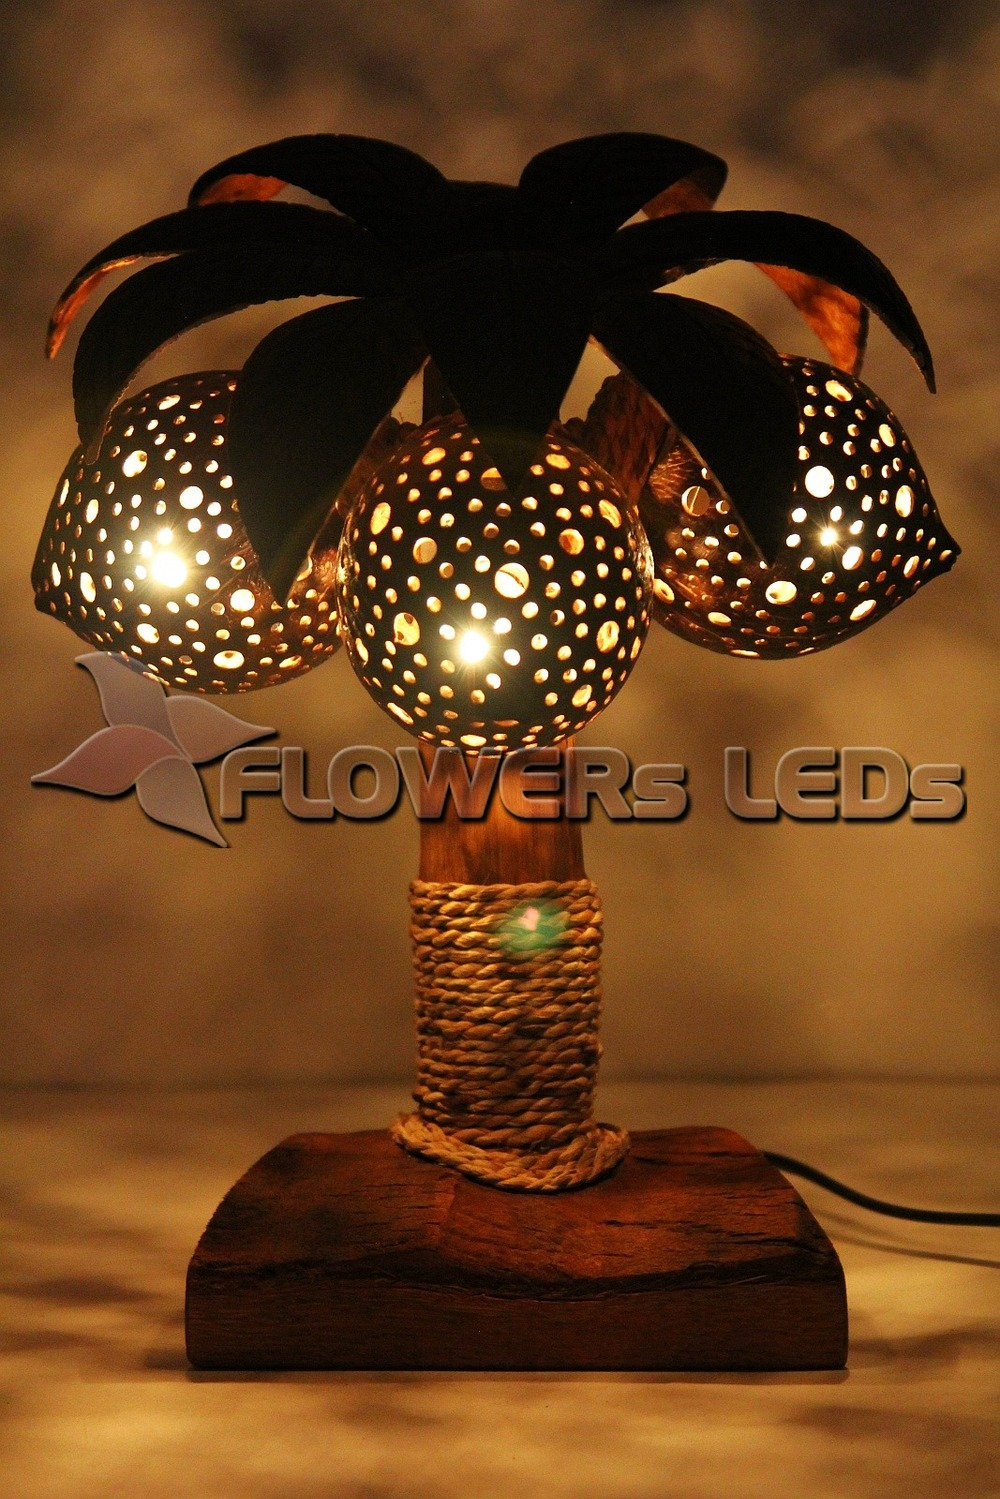 COCONUT SHELL LAMP, LIGHTING, NIGHT LIGHTS, LAMPS FOR HOME DECOR, TREES,